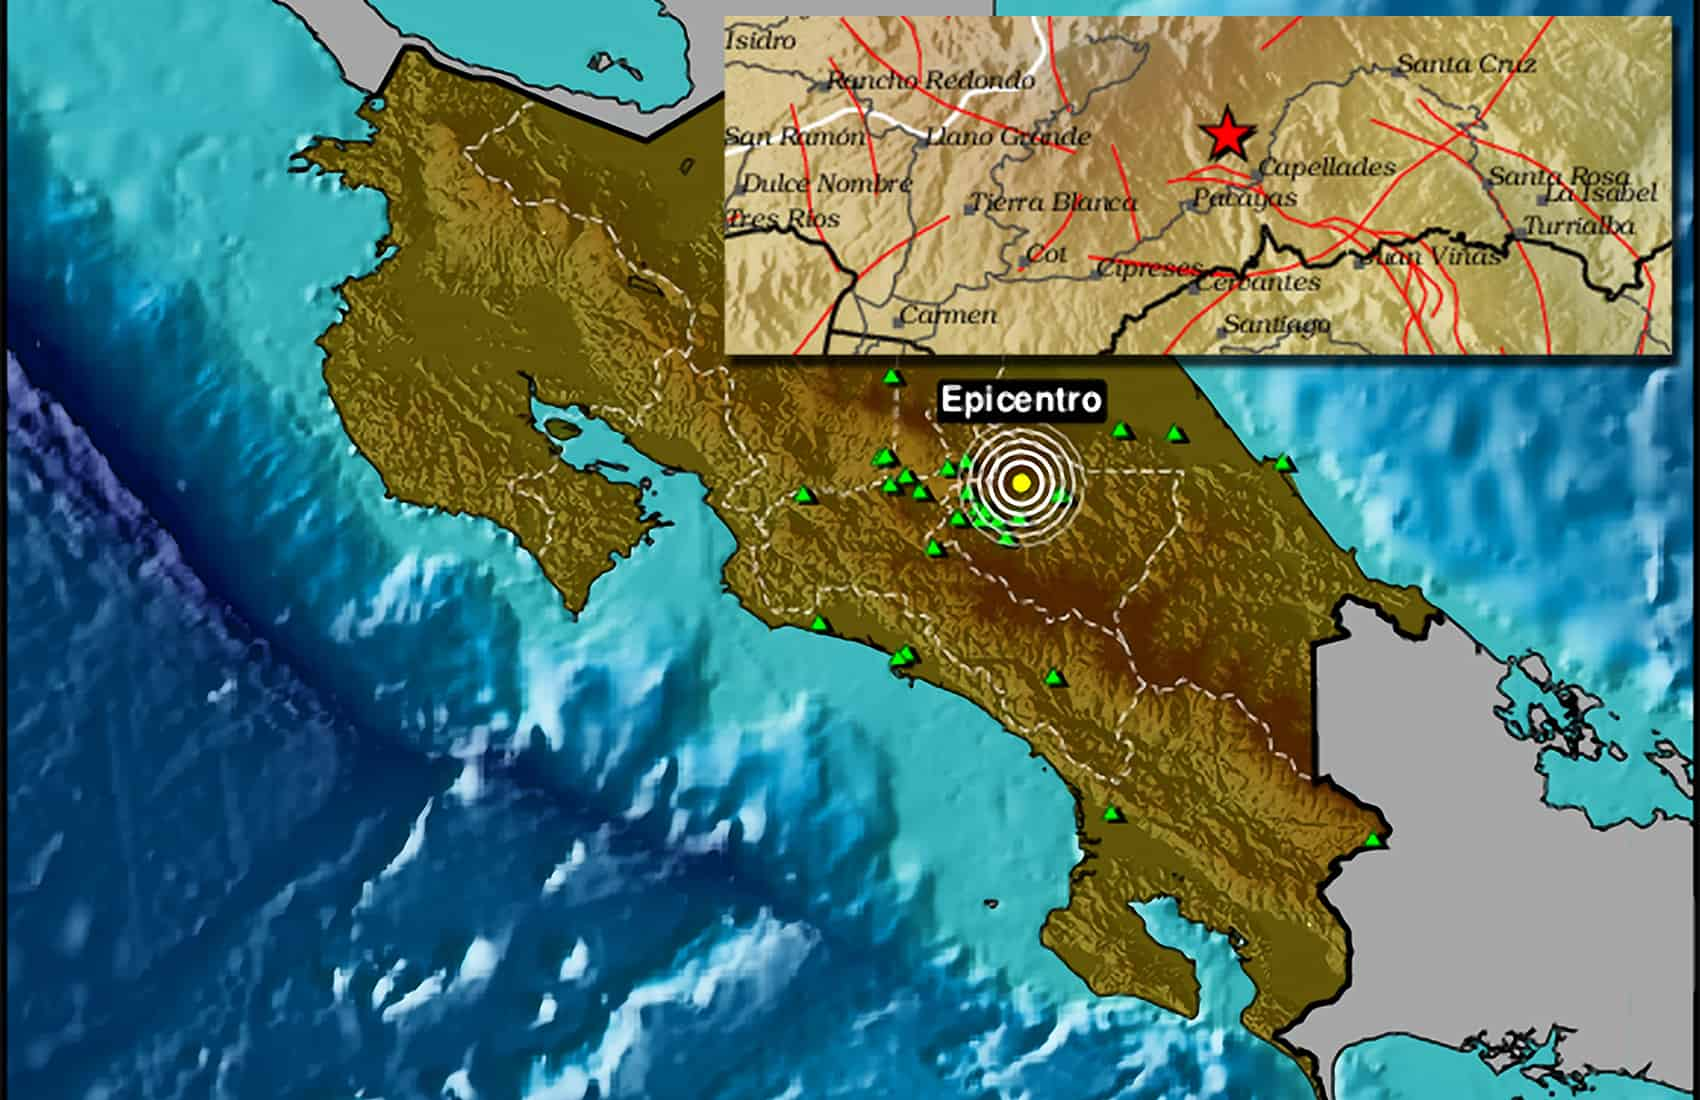 San Ramon Earthquake Map.Earthquake Jolts Five Provinces In Costa Rica The Tico Times